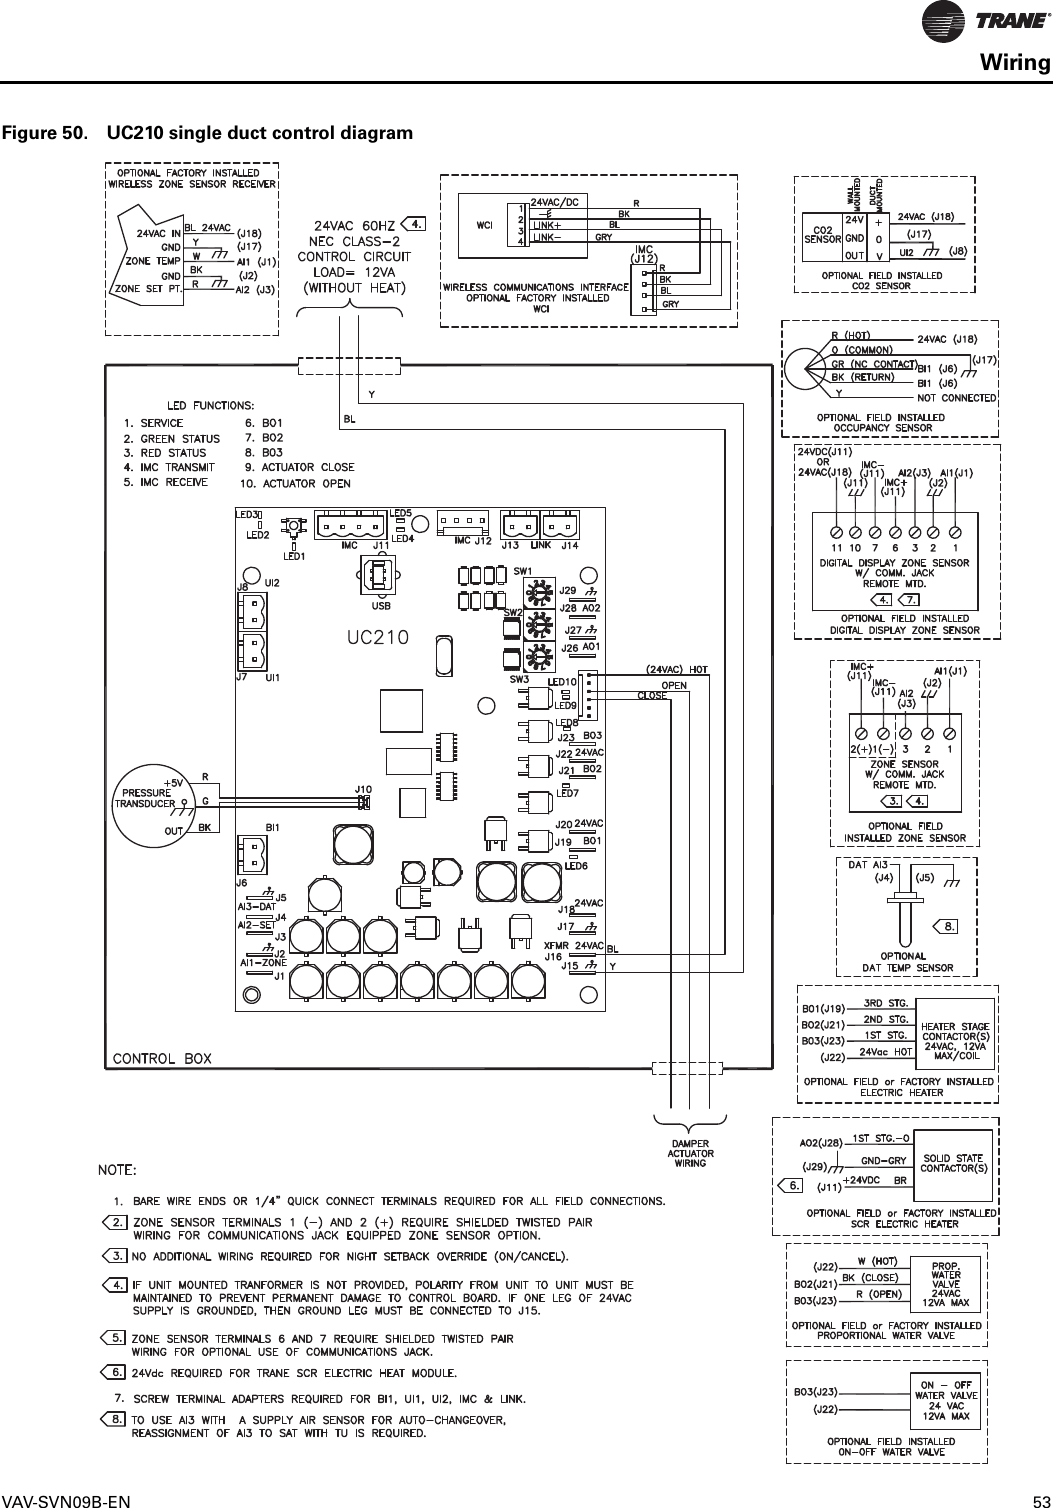 [DIAGRAM] Going From Trane Manual Thermostat To Honeywell